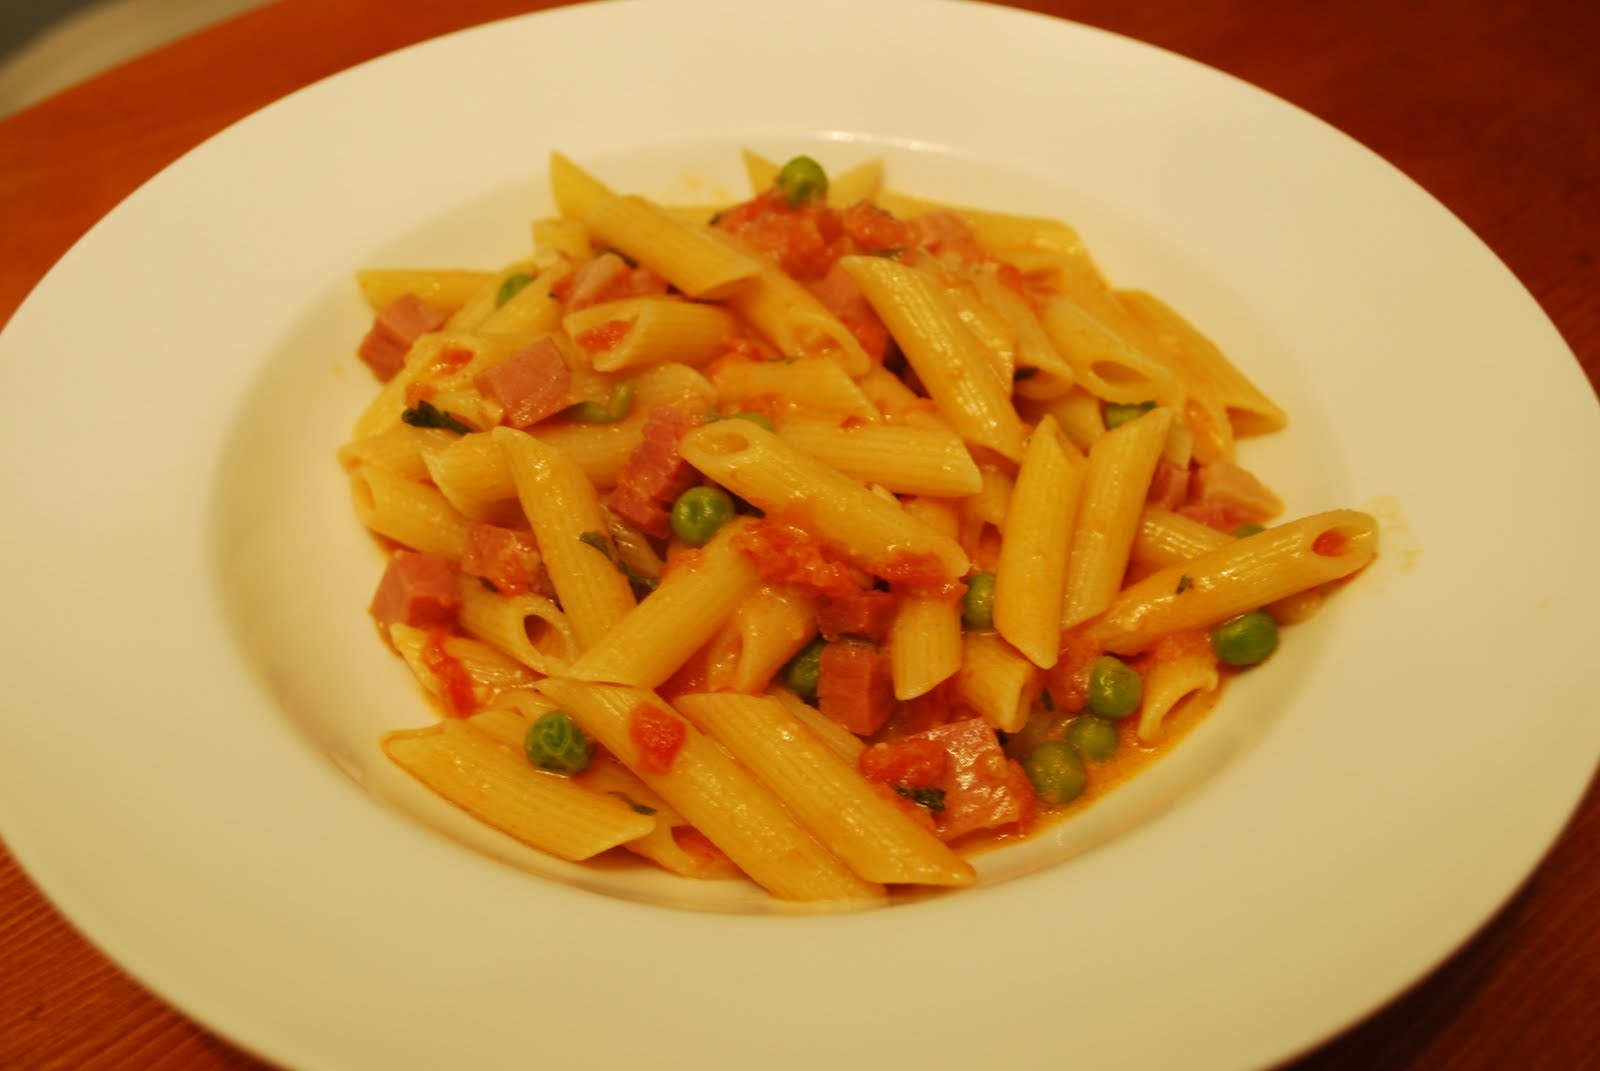 ... This and That: Penne Vodka with 3 P's - Prosciutto, Pancetta, and Peas